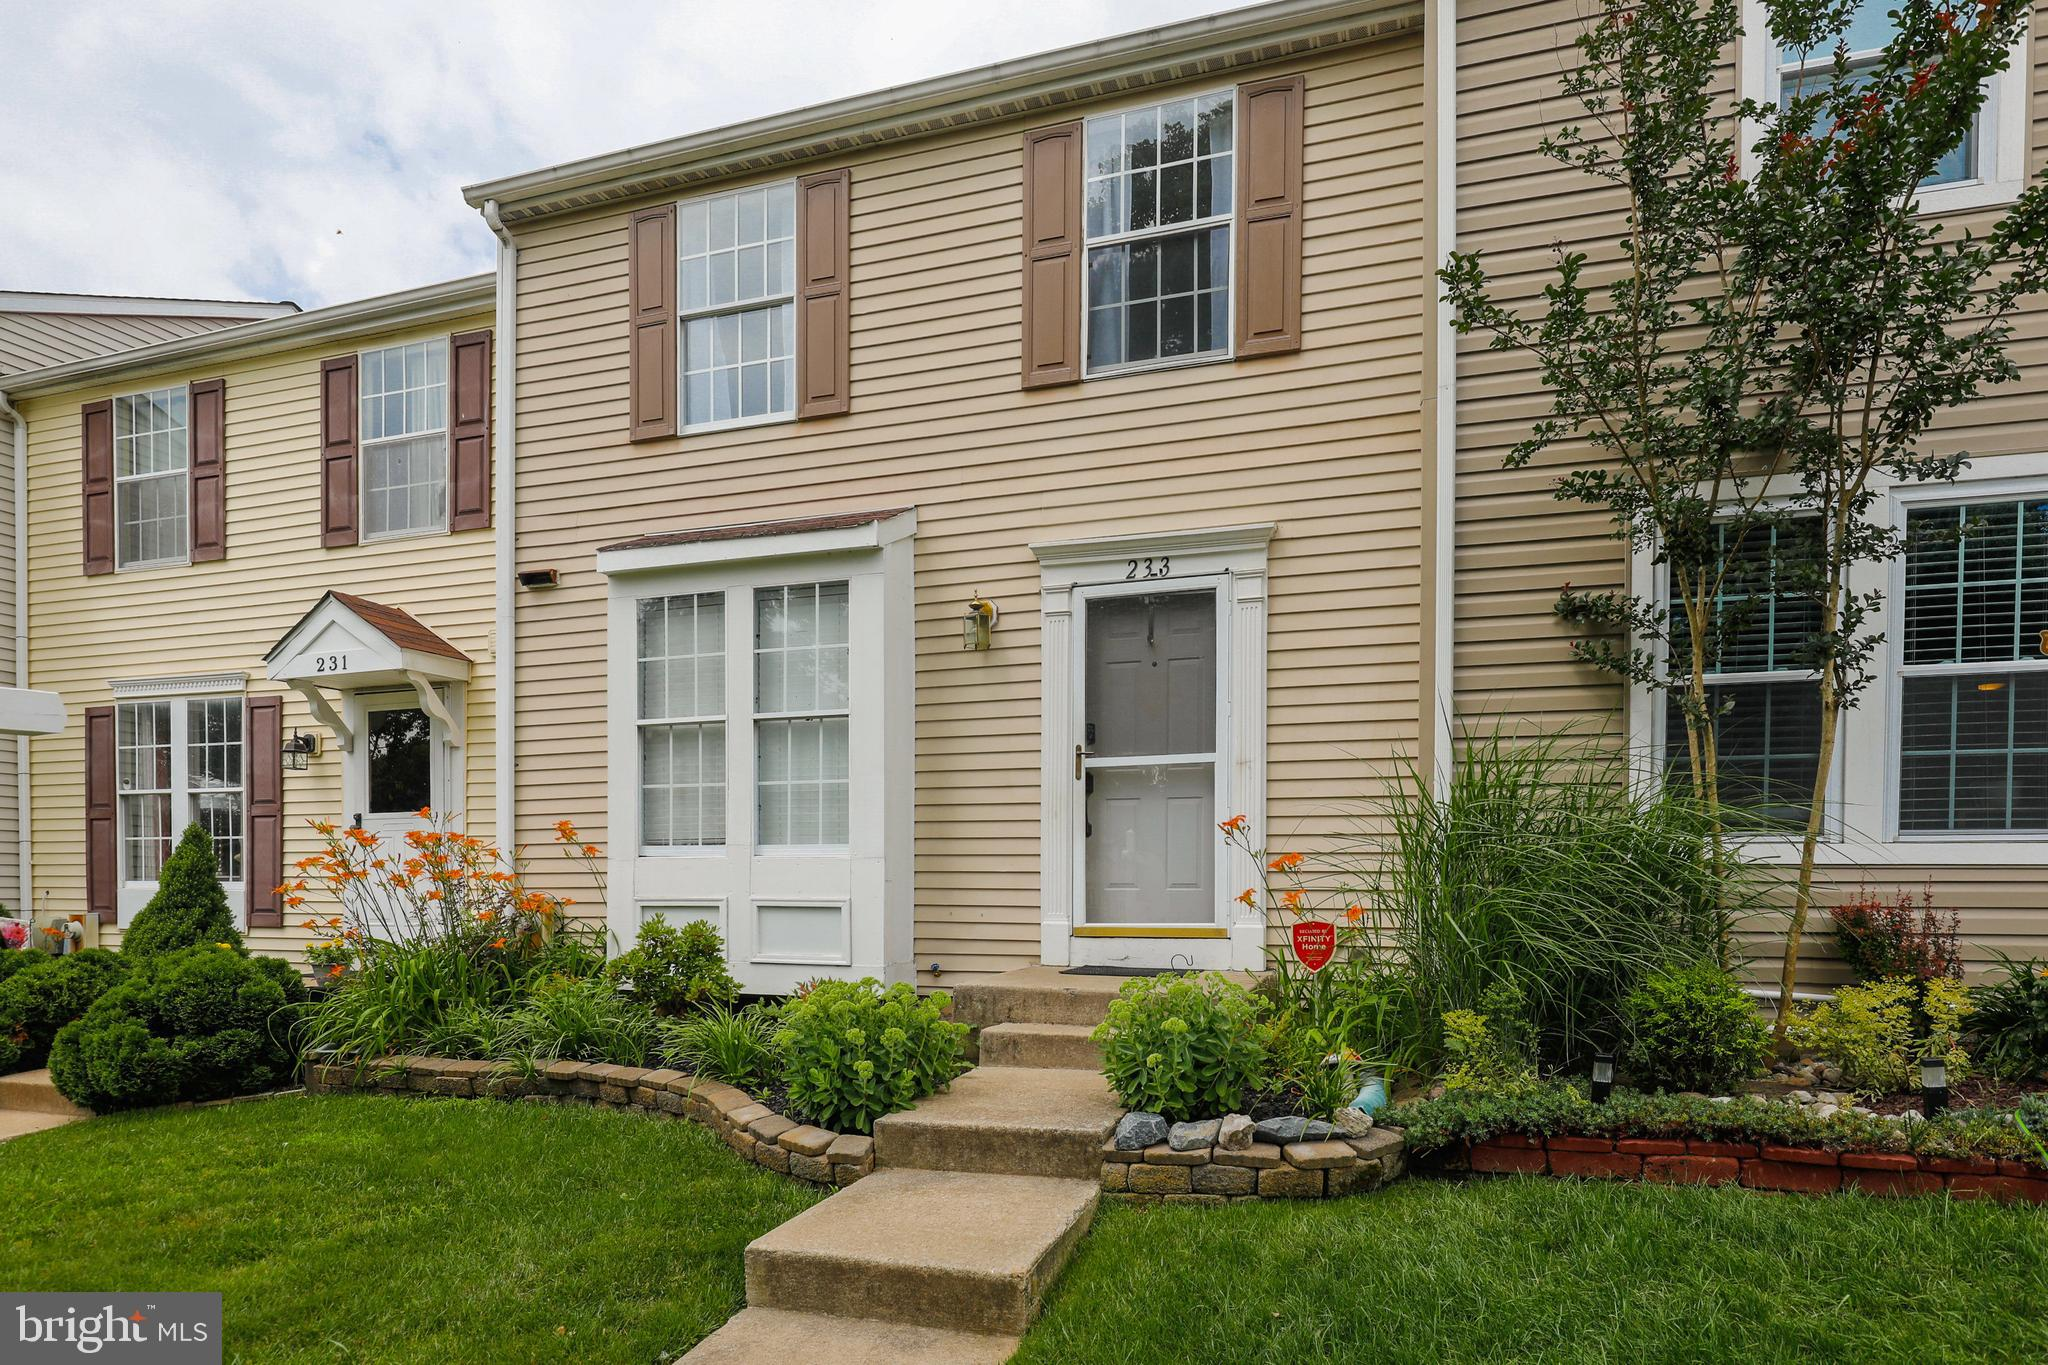 Welcome Home! Move in ready townhouse in the desired community of Constant Friendship. Total Kitchen remodel 2 years ago.   Convenient location to lost of shopping and minutes away from 95.  At this price this home will not last! Call for your appointment today.